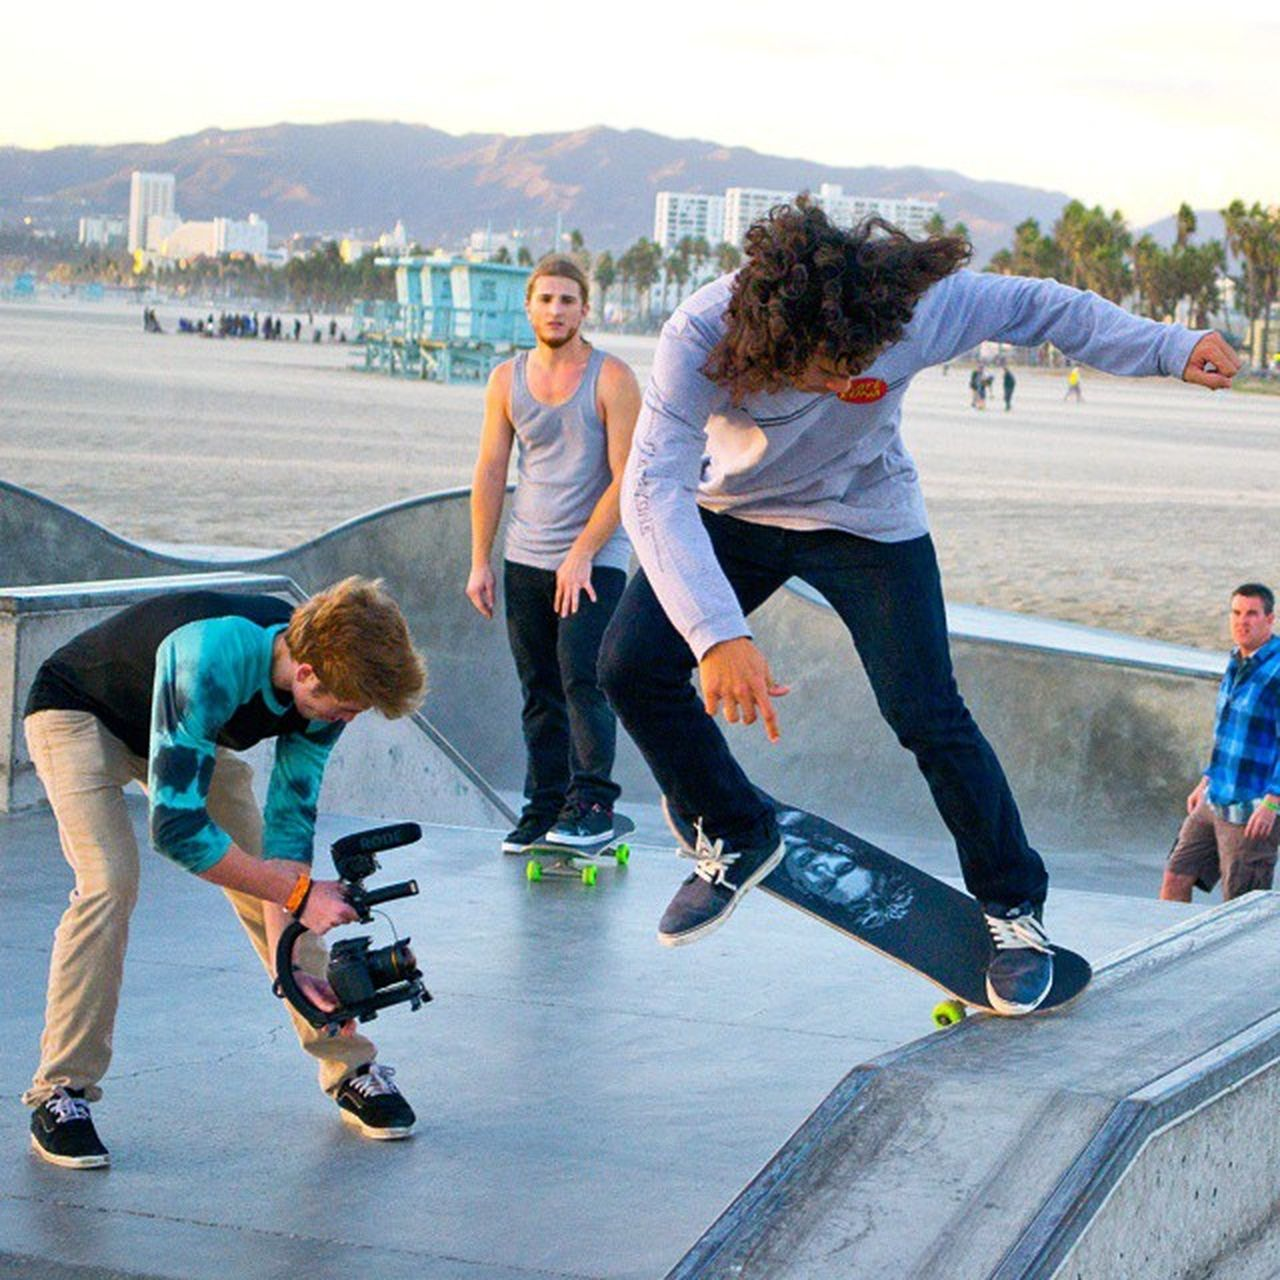 full length, skateboard, three people, leisure activity, togetherness, sport, adult, day, lifestyles, skateboard park, people, motion, friendship, young adult, skill, healthy lifestyle, outdoors, young women, men, adults only, city